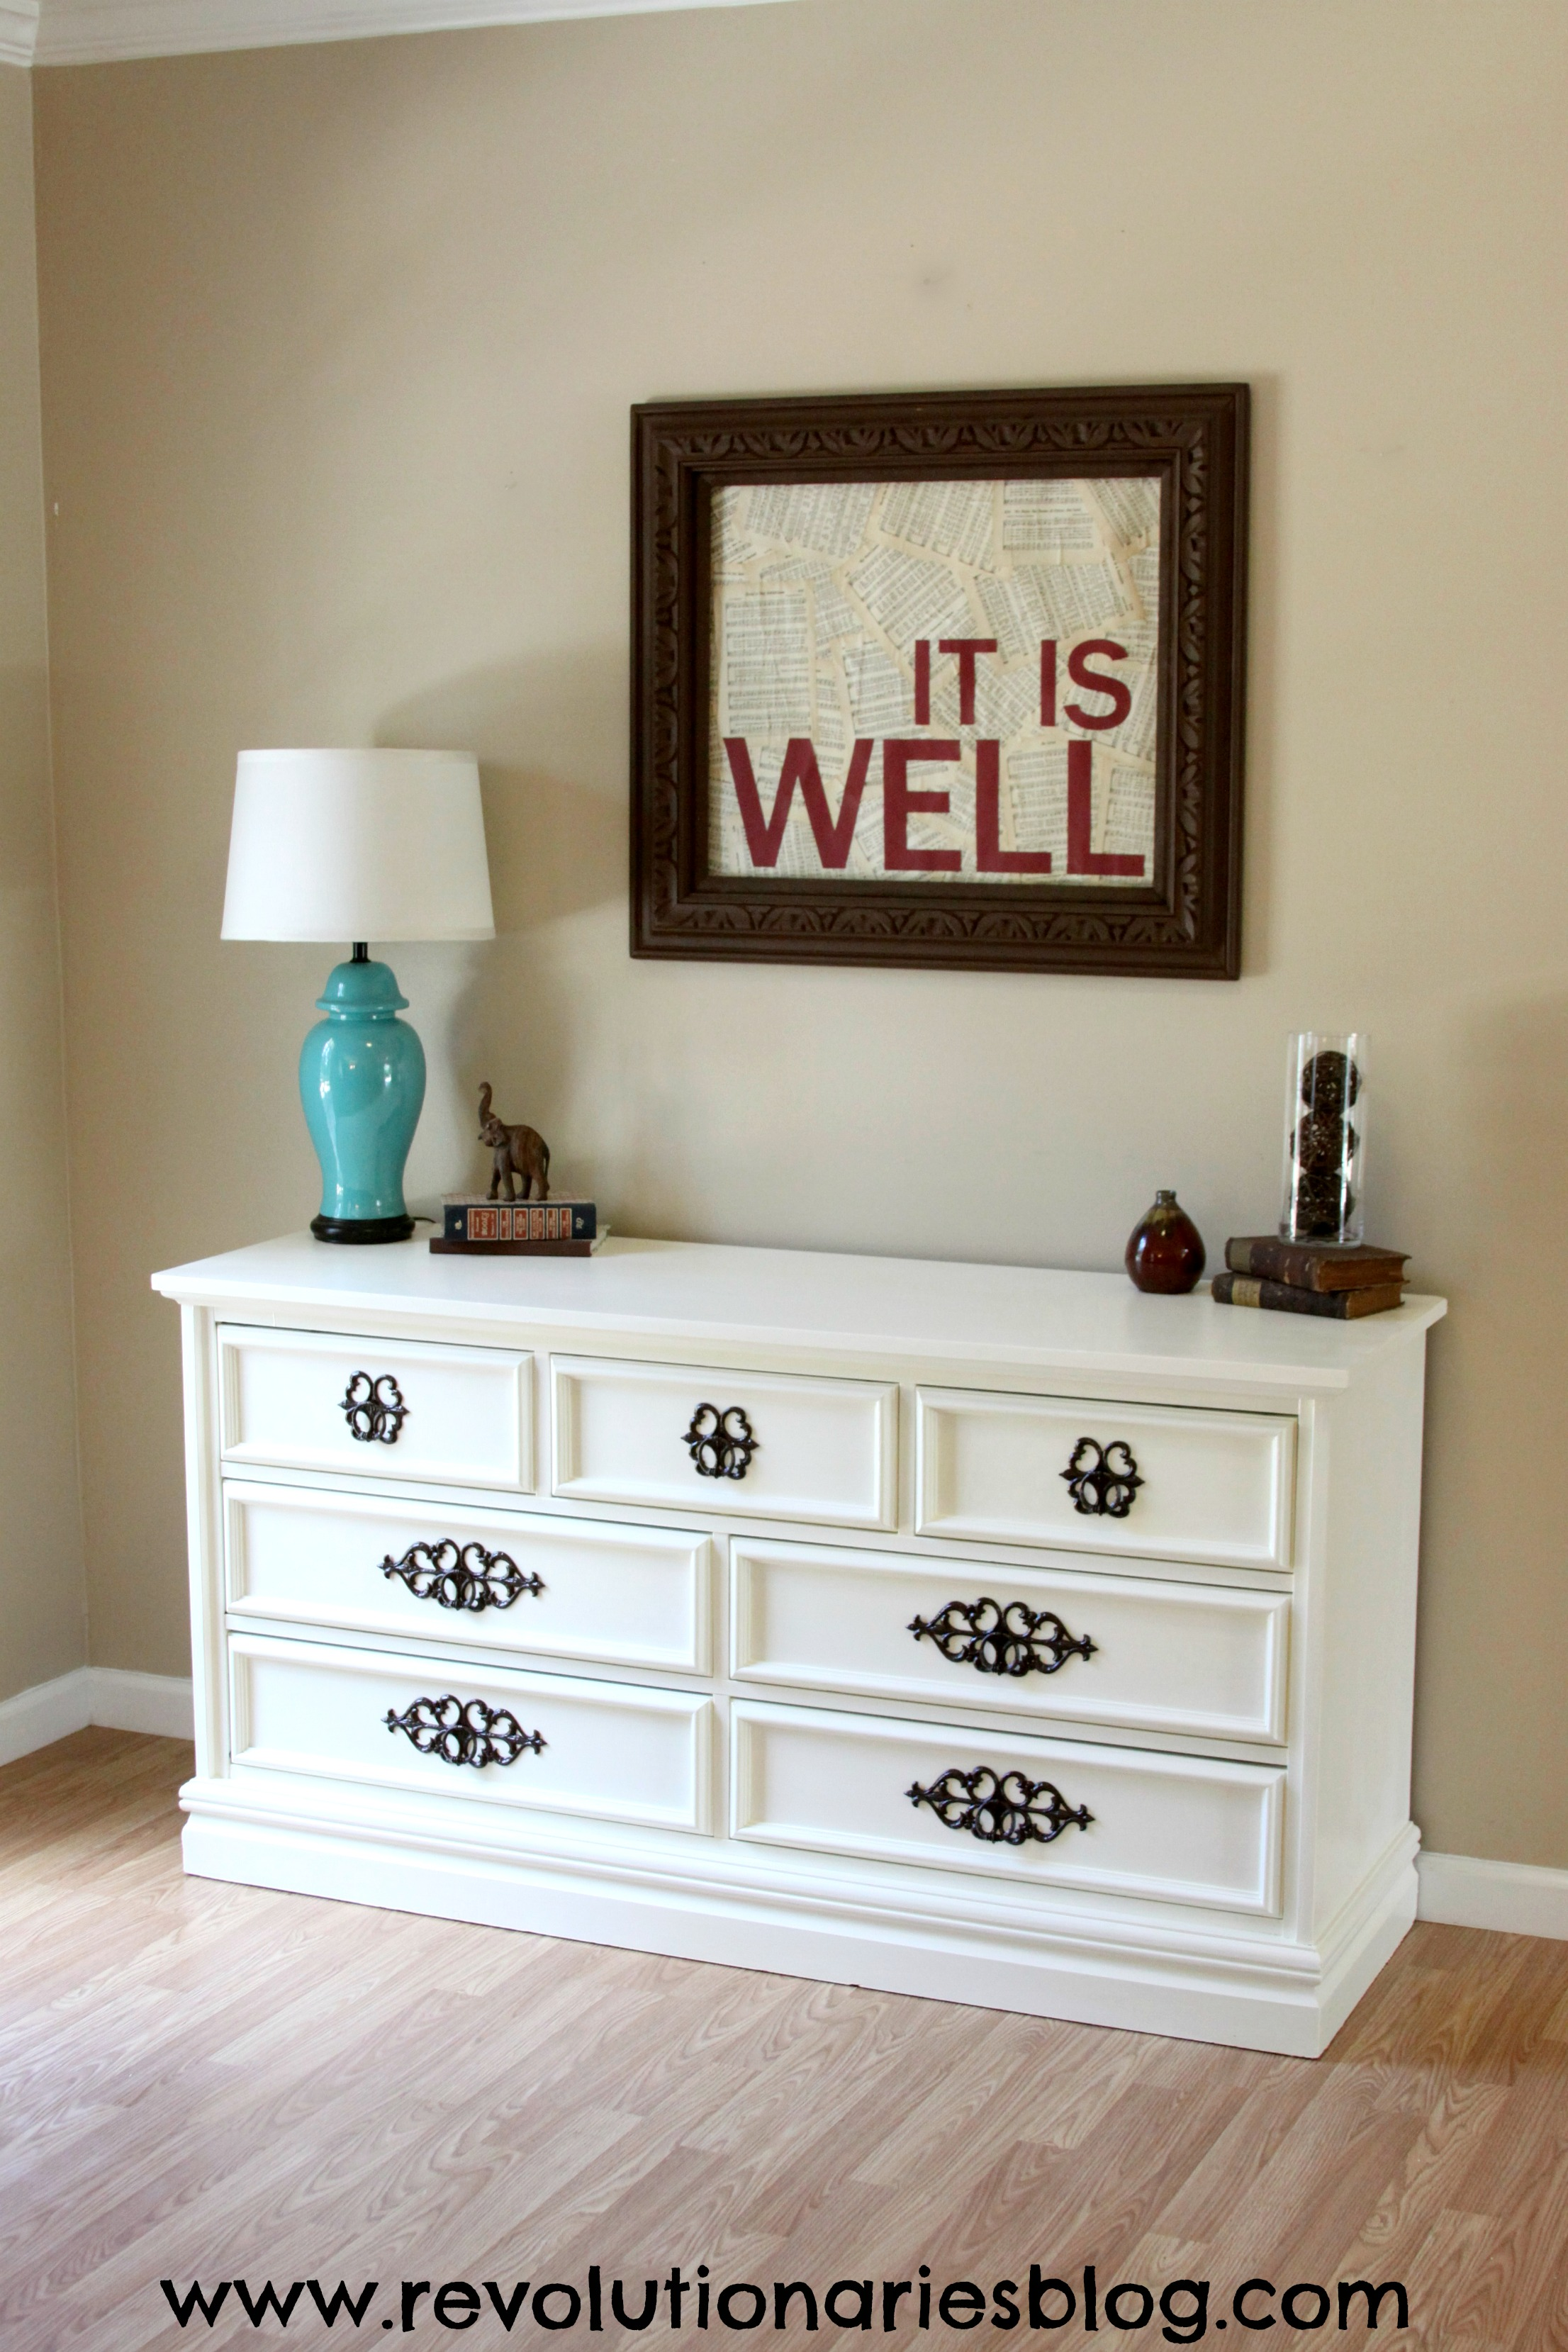 side-shot-of-white-and-brown-dresser.jpg